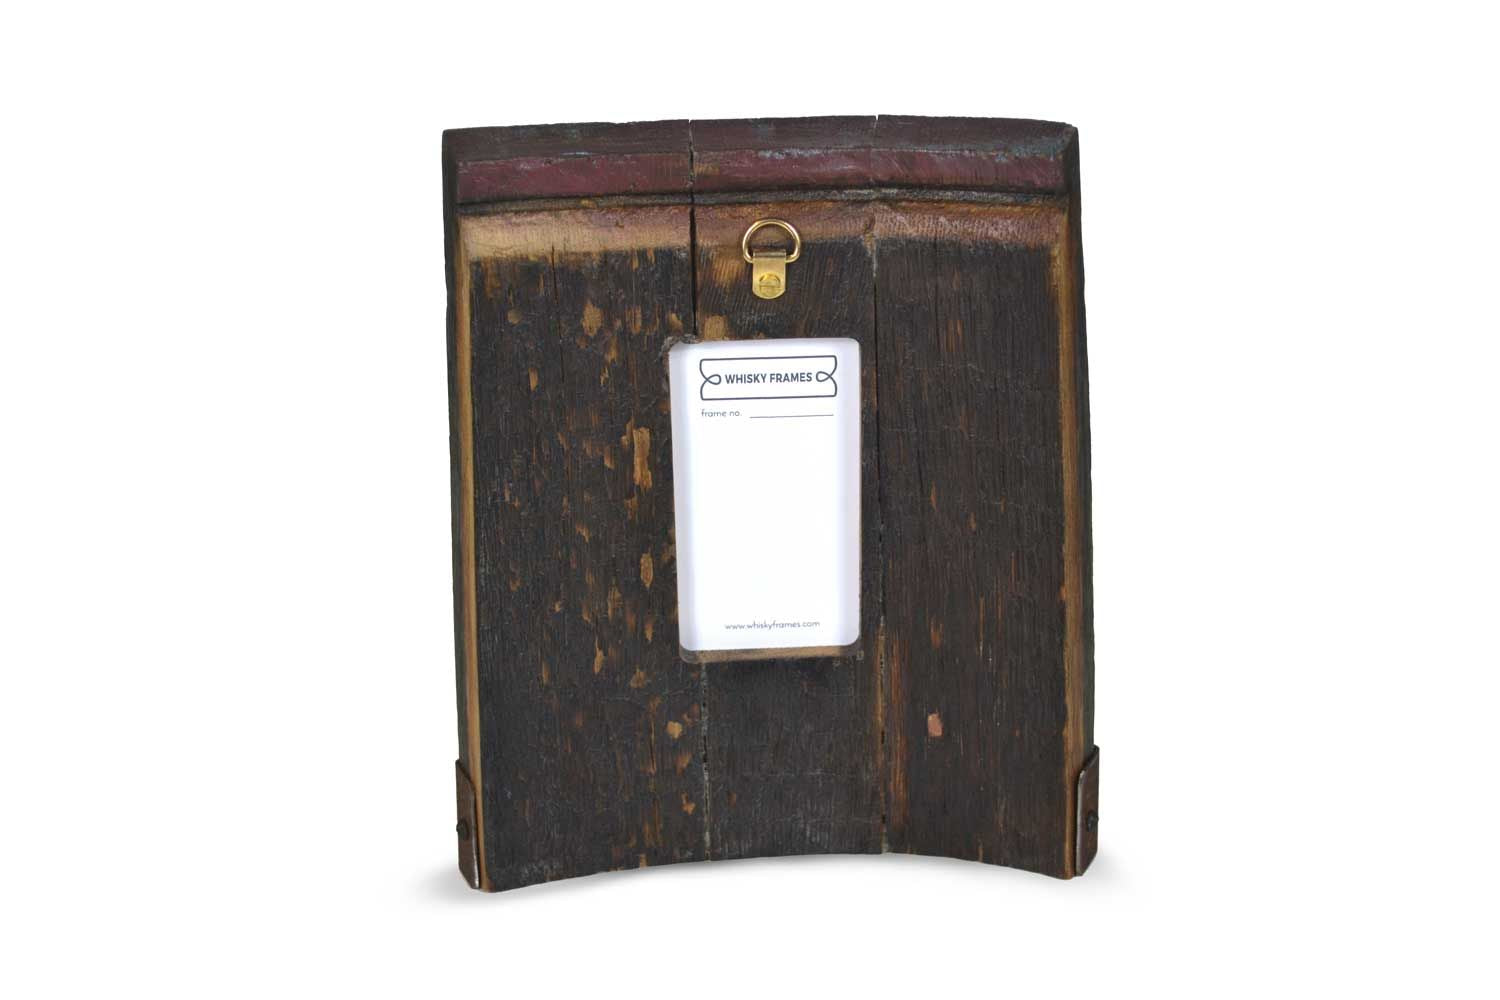 Whisky Barrel Ring Chime Frame Made in Scotland by Whisky Frames